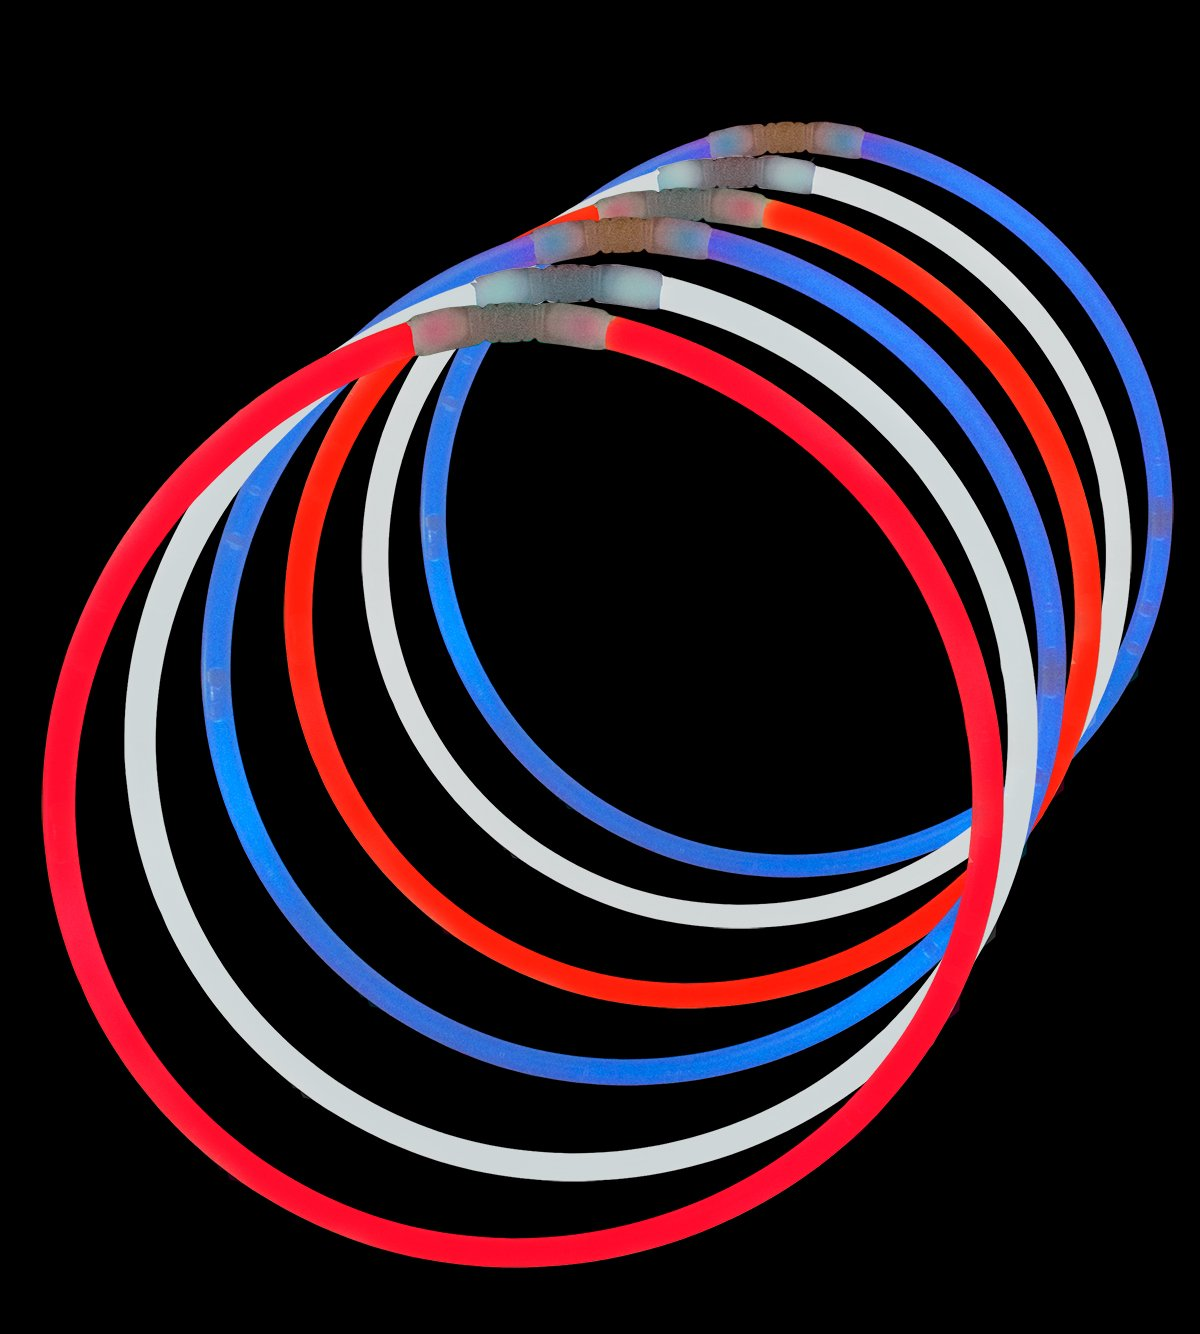 Lumistick 22 Inch Glow Stick Necklaces   Safe & Non-Toxic Light Up Premium Super Bright Glowstick   Perfect for 4th of July Independence Celebration - Tri-Color Red, White & Blue (150 Glowsticks)